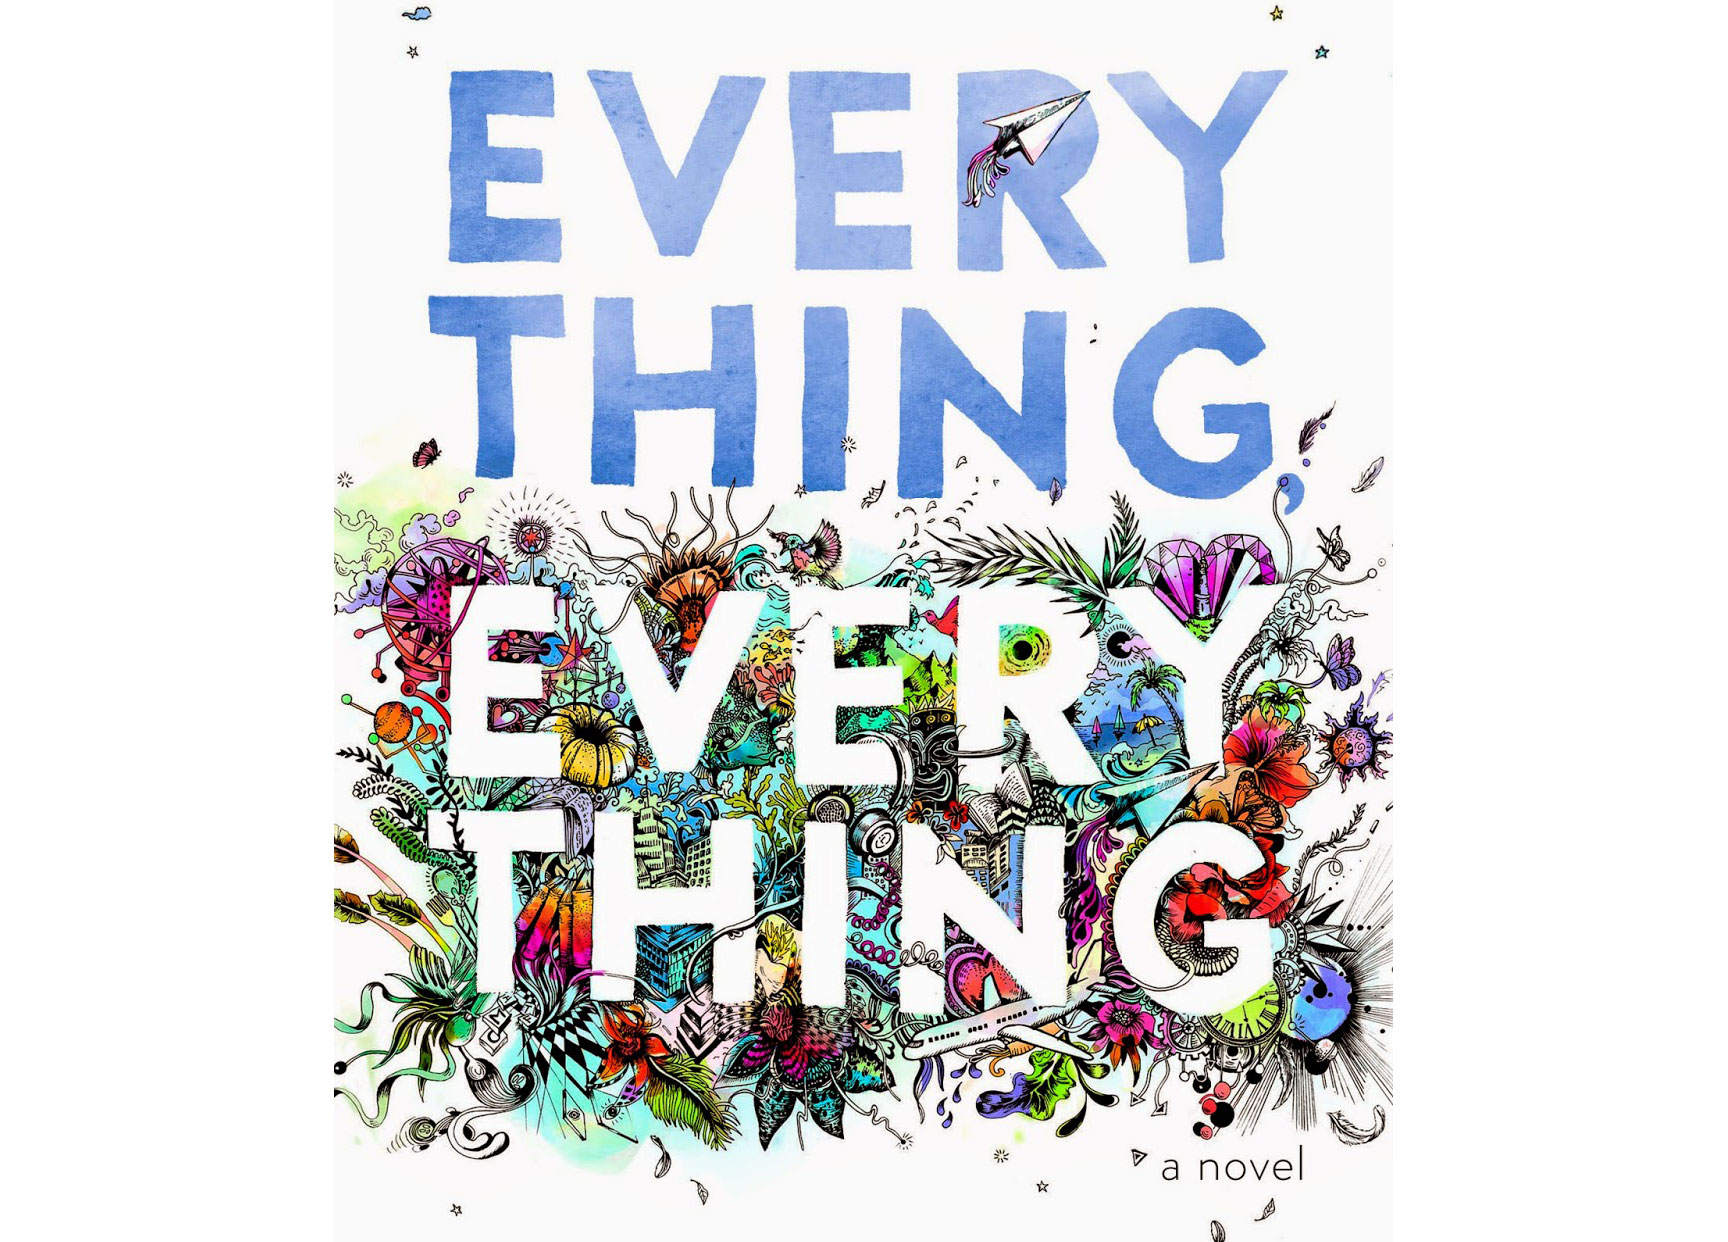 everything-cover-image